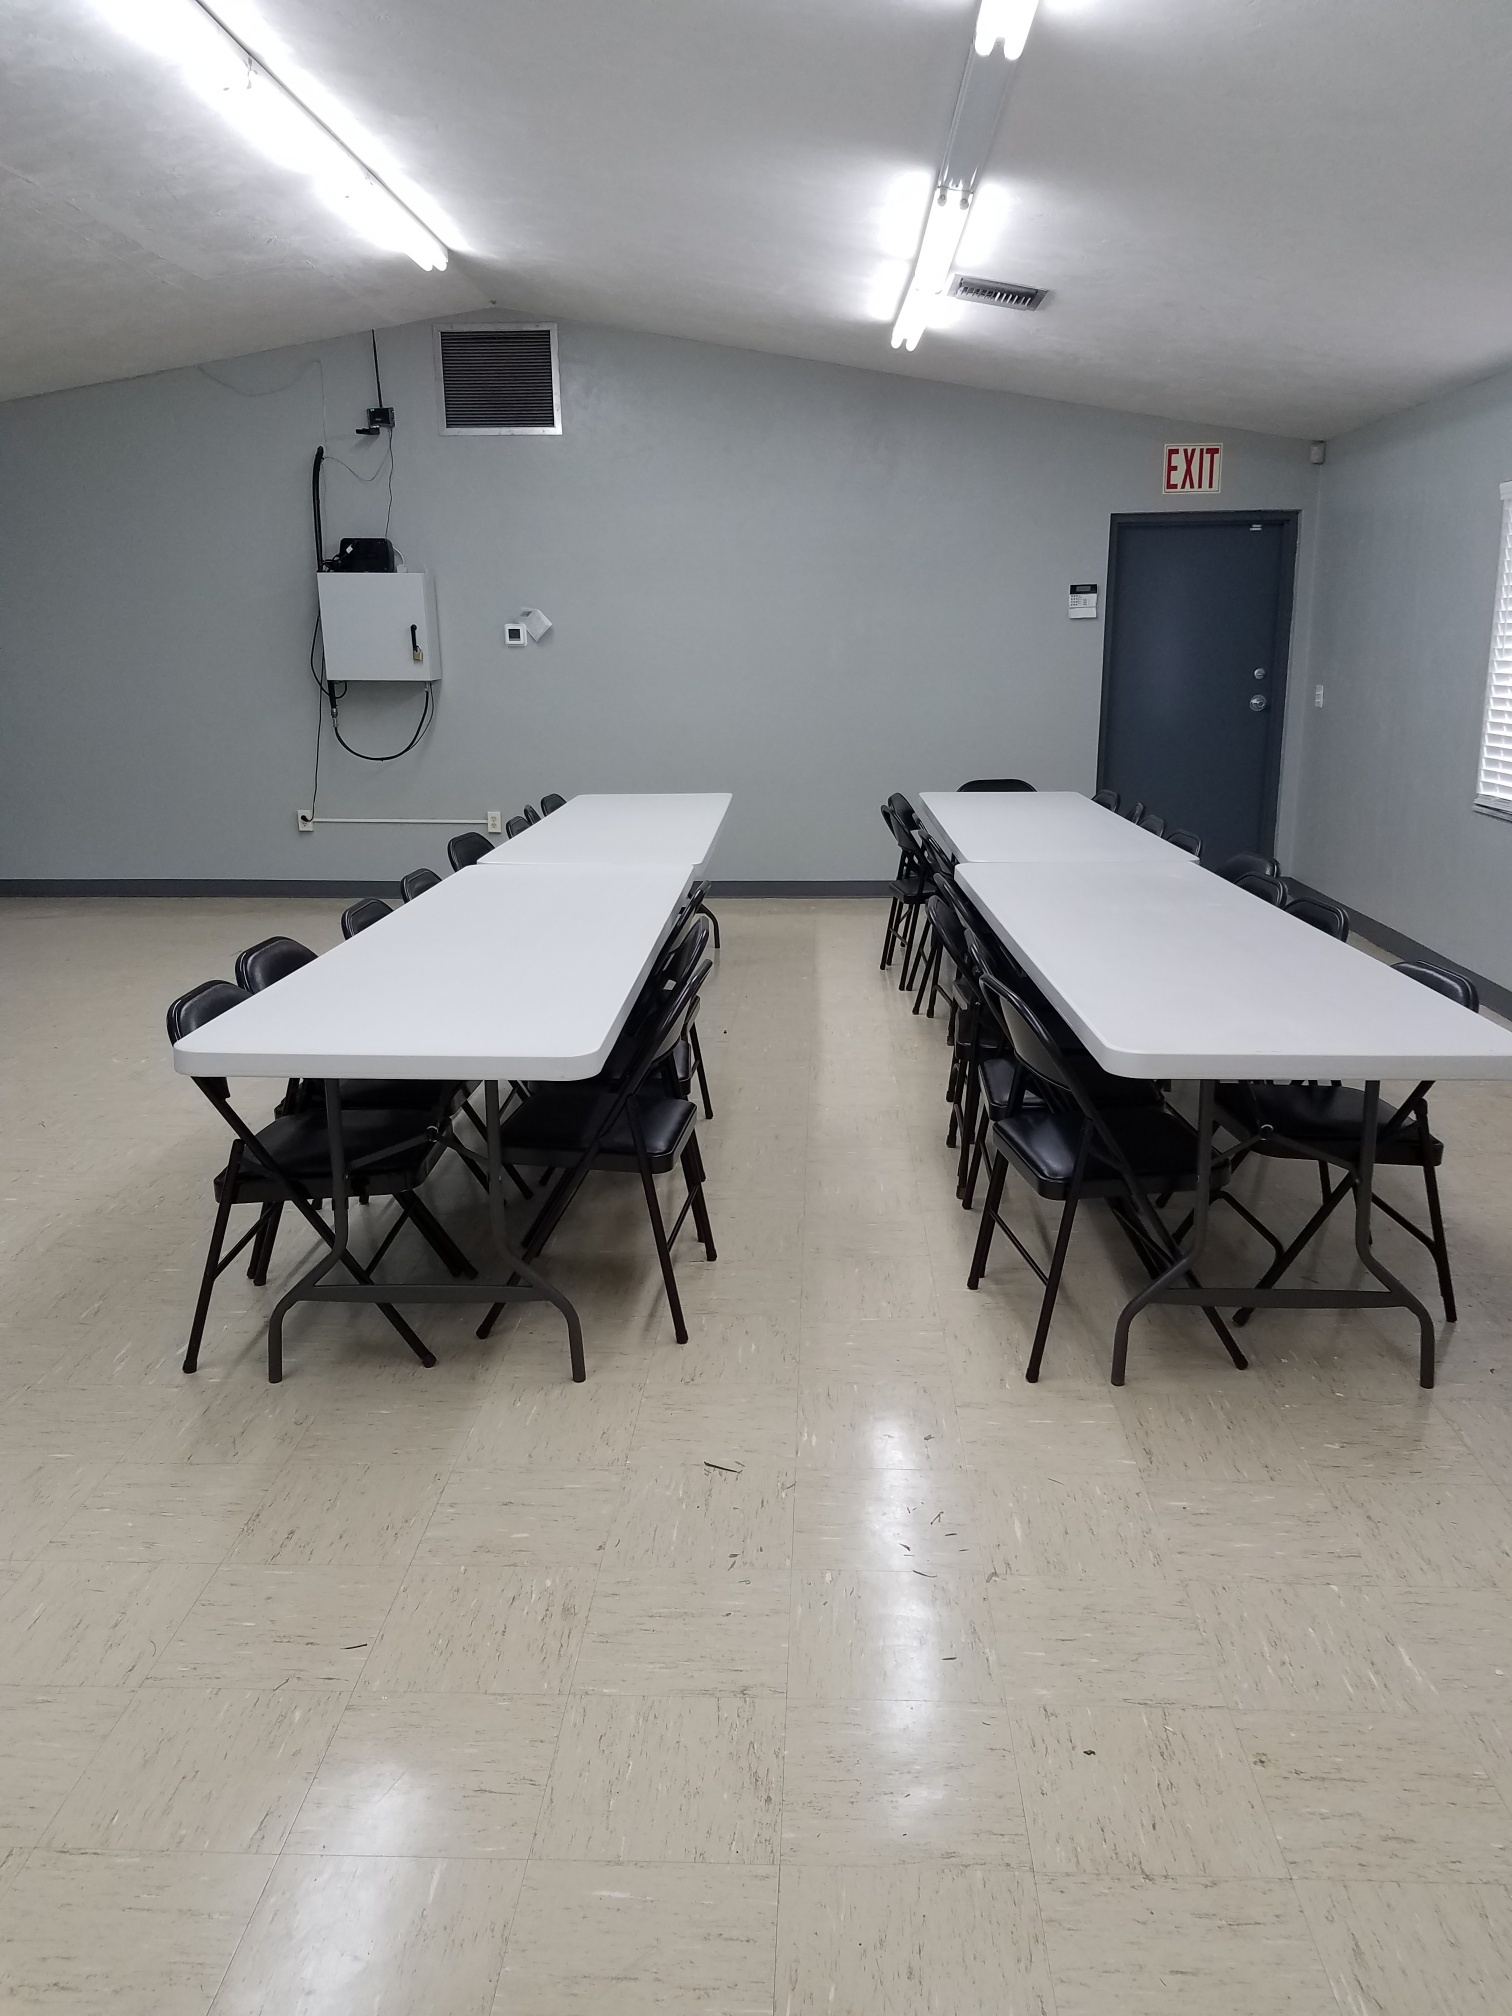 Tables in meeting room